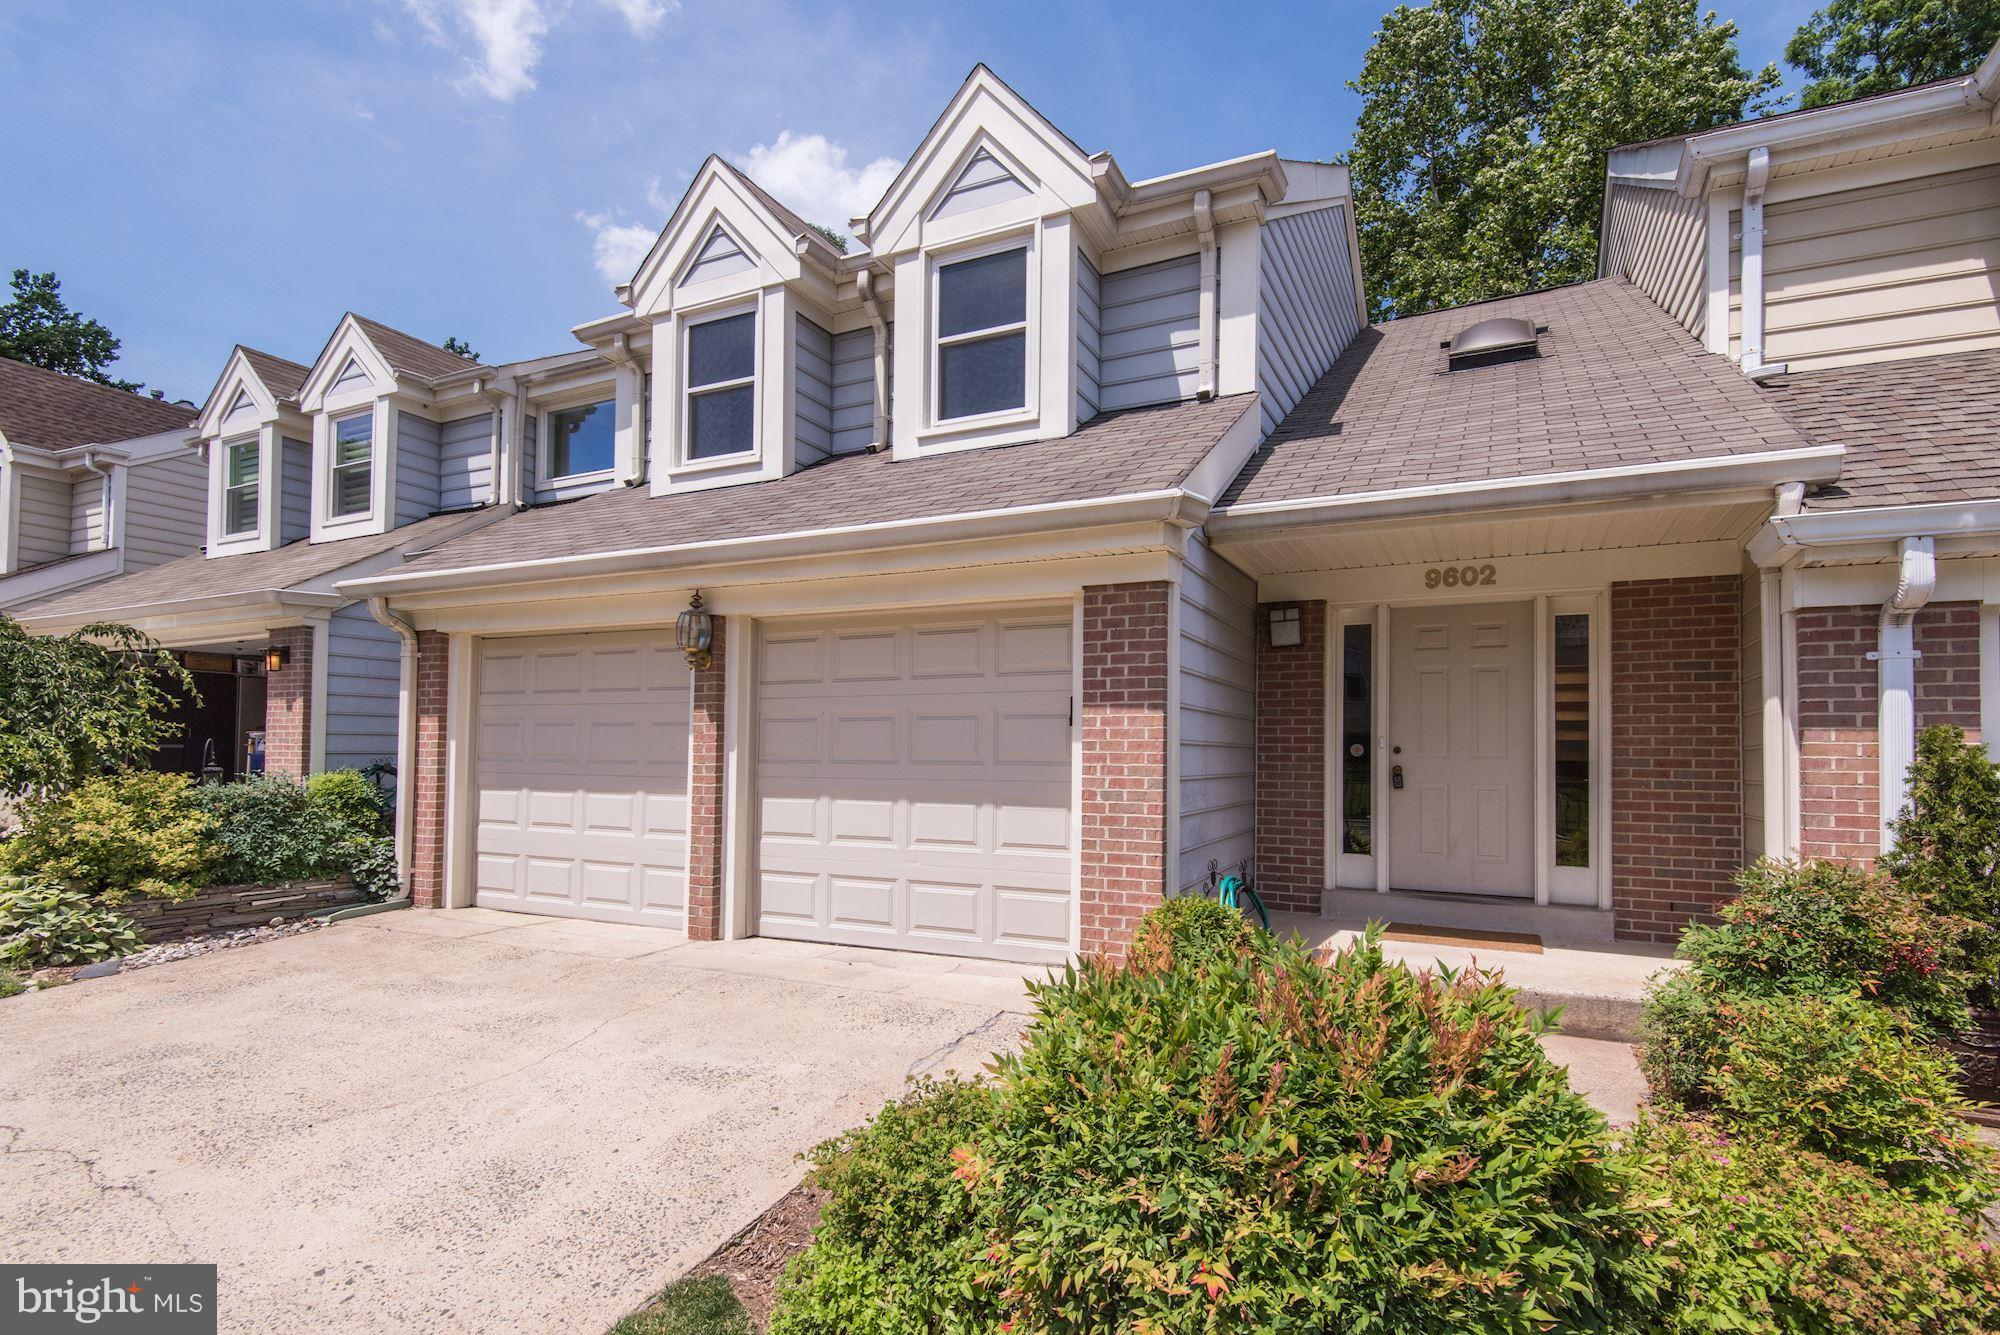 EXTRAORDINARILY SPACIOUS LUXURIOUS 4 BR 3.5 BA TOWNHOUSE LOCATED NEAR PUBLIC TRANSPORTATION & MAJOR ROADS. TREX DECK (2017), HARDWOOD FLOORS, WALKOUT BASEMENT, GRANITE COUNTERS, STAINLESS STEEL APPLIANCES, GRANITE FLOORS IN FOYER, KITCHEN, DECORATED SEE THROUGH FIREPLACE IN DINING & LIVING ROOM, SKYLIGHT, UPDATED KITCHEN & BATHS, BACK TO TREES, AVAILABLE 2/1/19